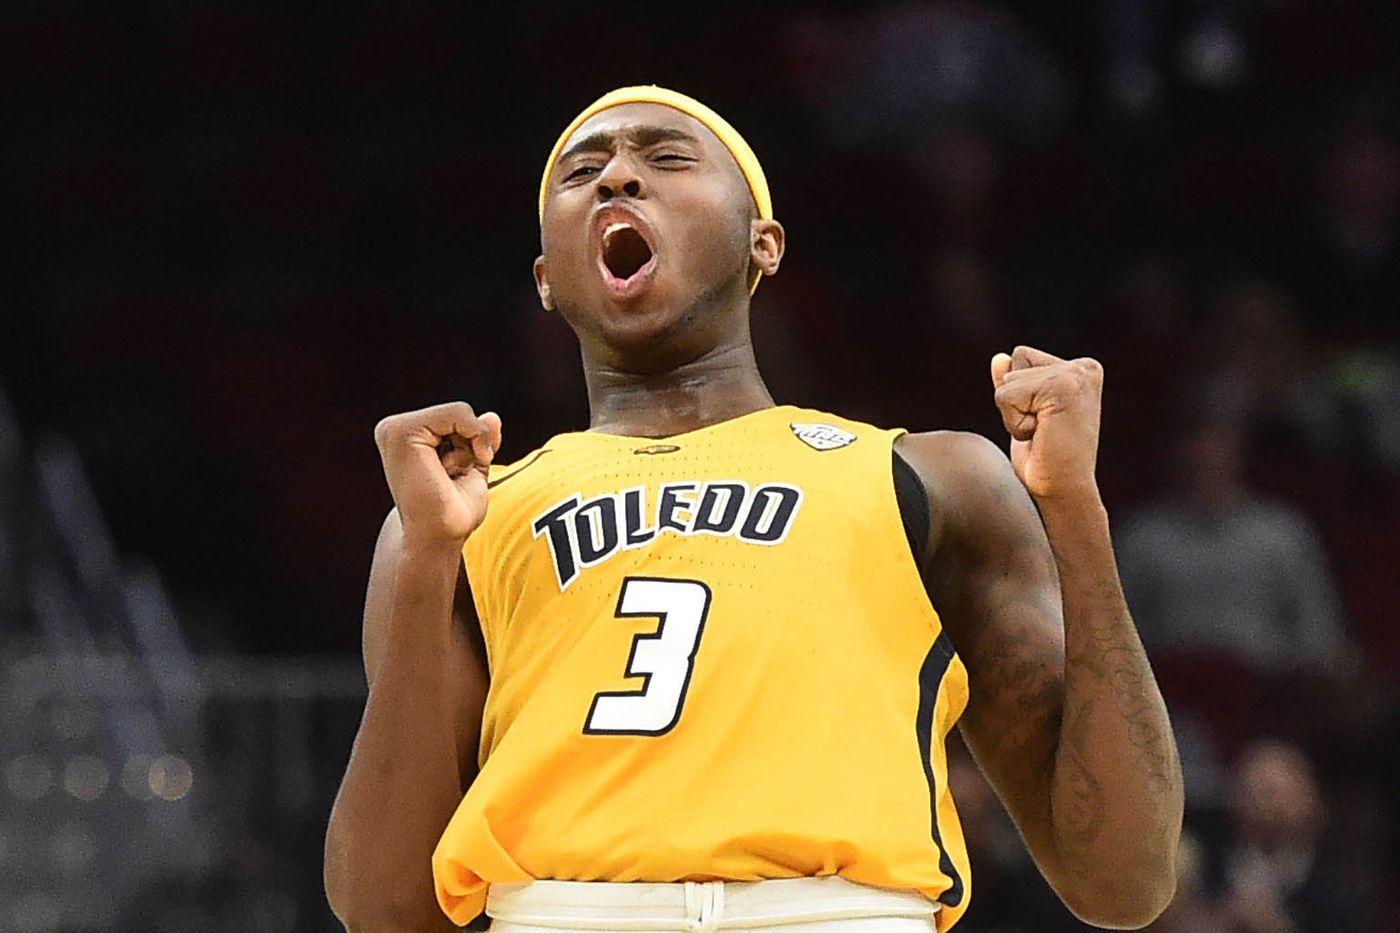 Toledo's much-needed win over Cleveland State big heading into MAC play -  Mid-Major Madness